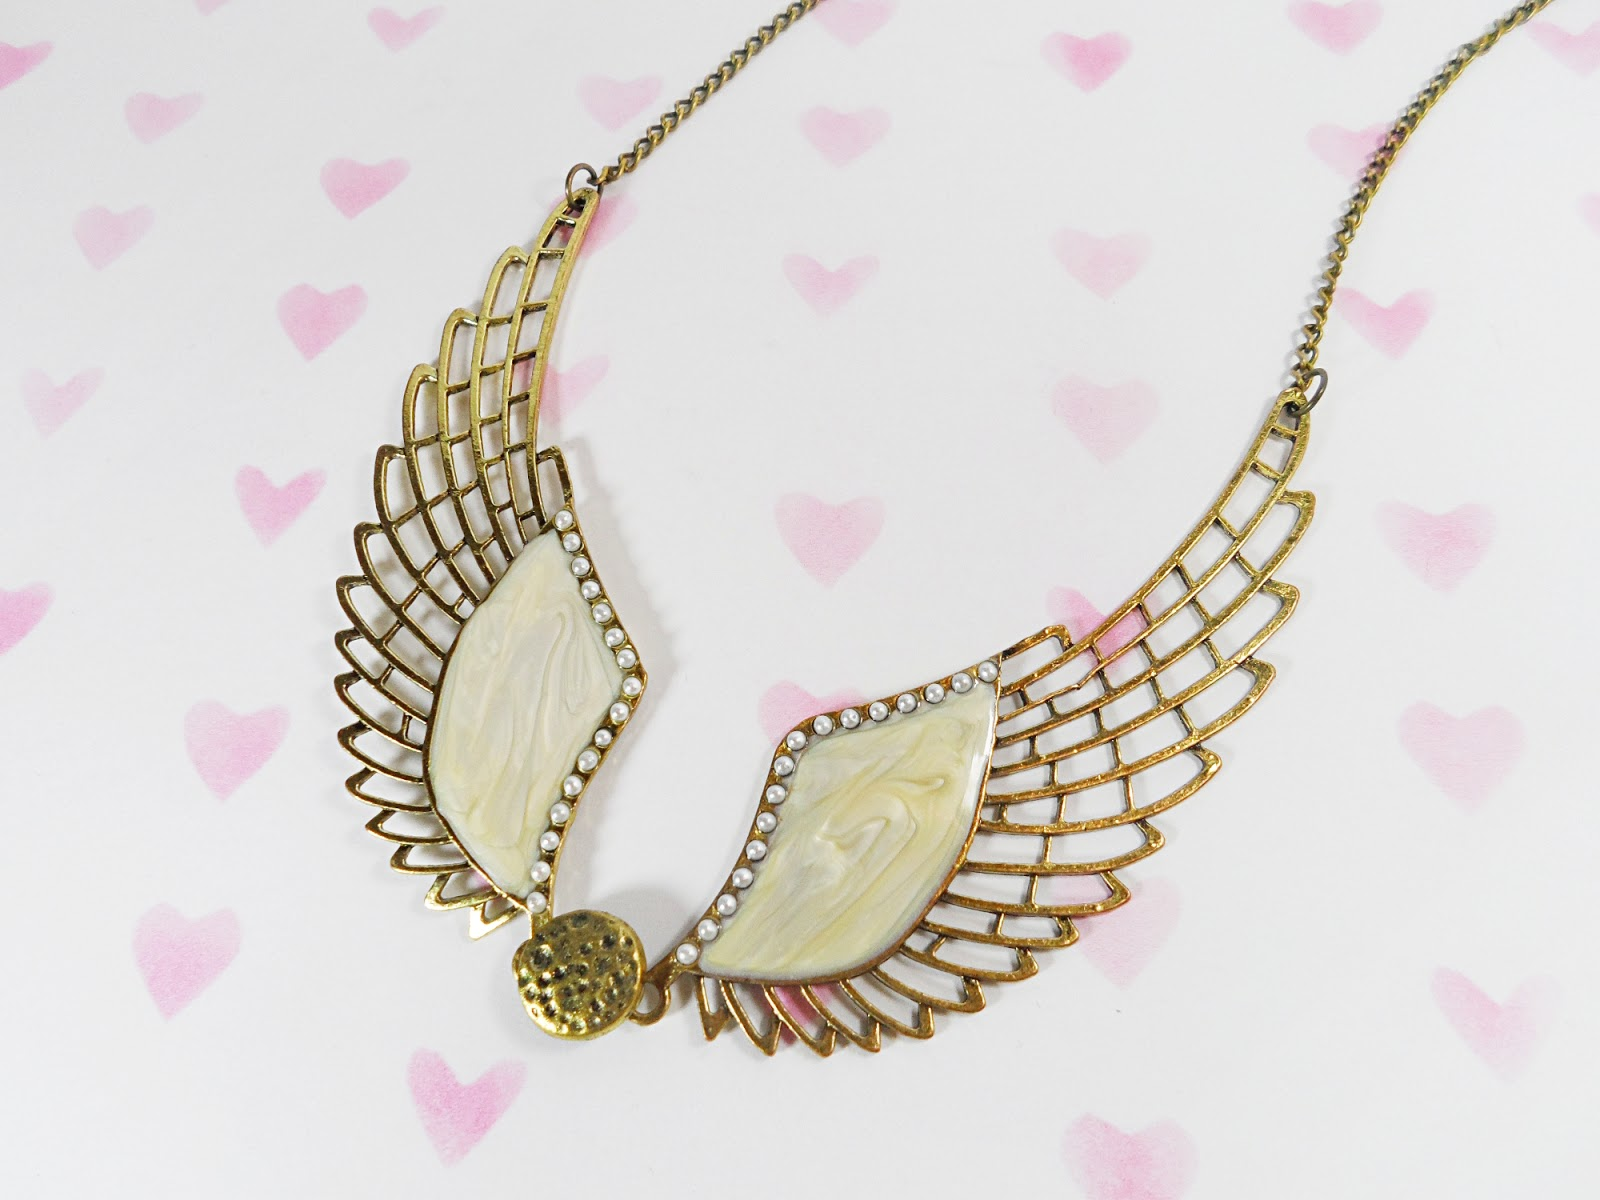 fblogger fashion vintage rosegal Steampunk Angel Wing Statement Necklace blogger review liz breygel